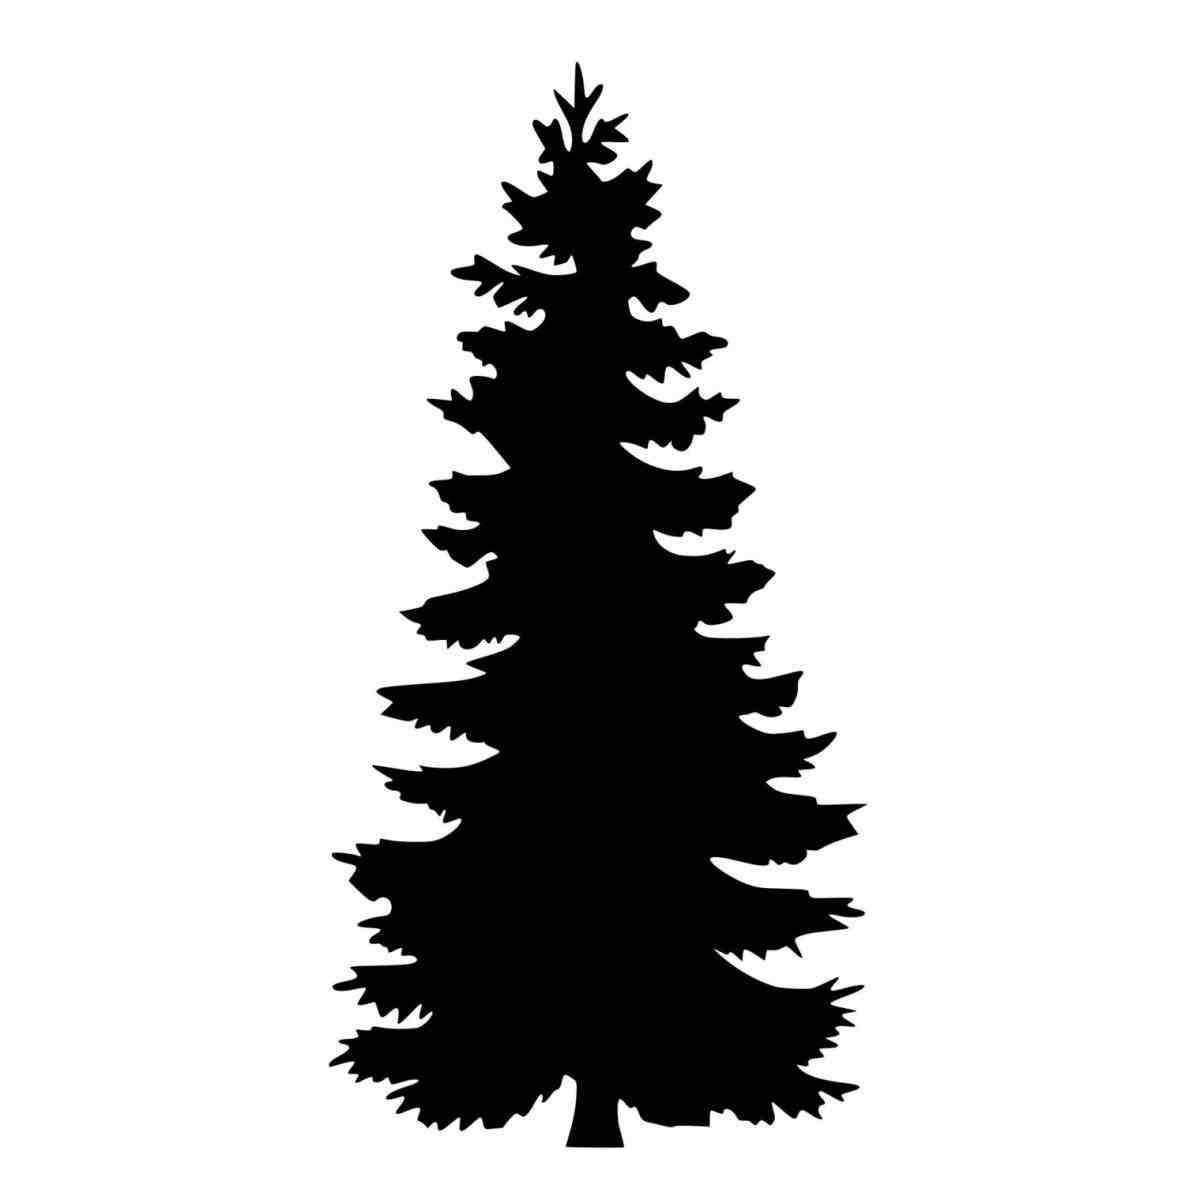 1185x1185 Clip Art Evergreen Tree Silhouette Free Image On Pixabay Fir Trees